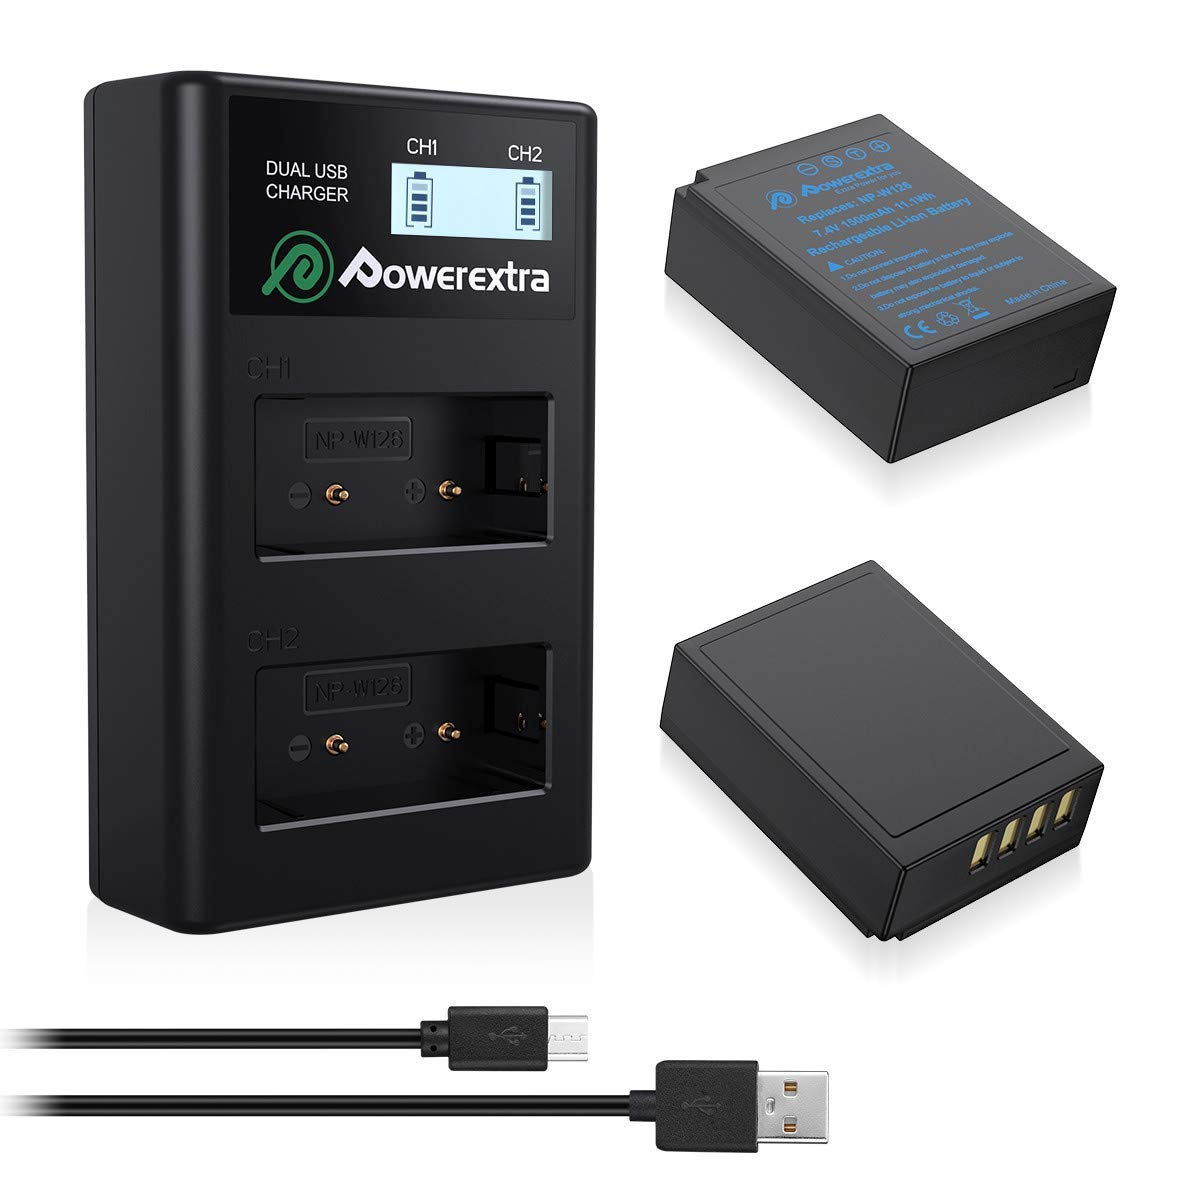 Powerextra 2X NP-W126 Battery & LCD Charger Compatible with Fujifilm X100F X-A10 X-A7 X-A5 X-A3 X-A2 X-A1 X-E2 X-E2S X-Pro1 X-Pro2 X-T1 X-T2 X-T3 X-T10 X-T20 X-T30 X-T100 X-H1 FinePix HS33EXR HS50EXR by Powerextra